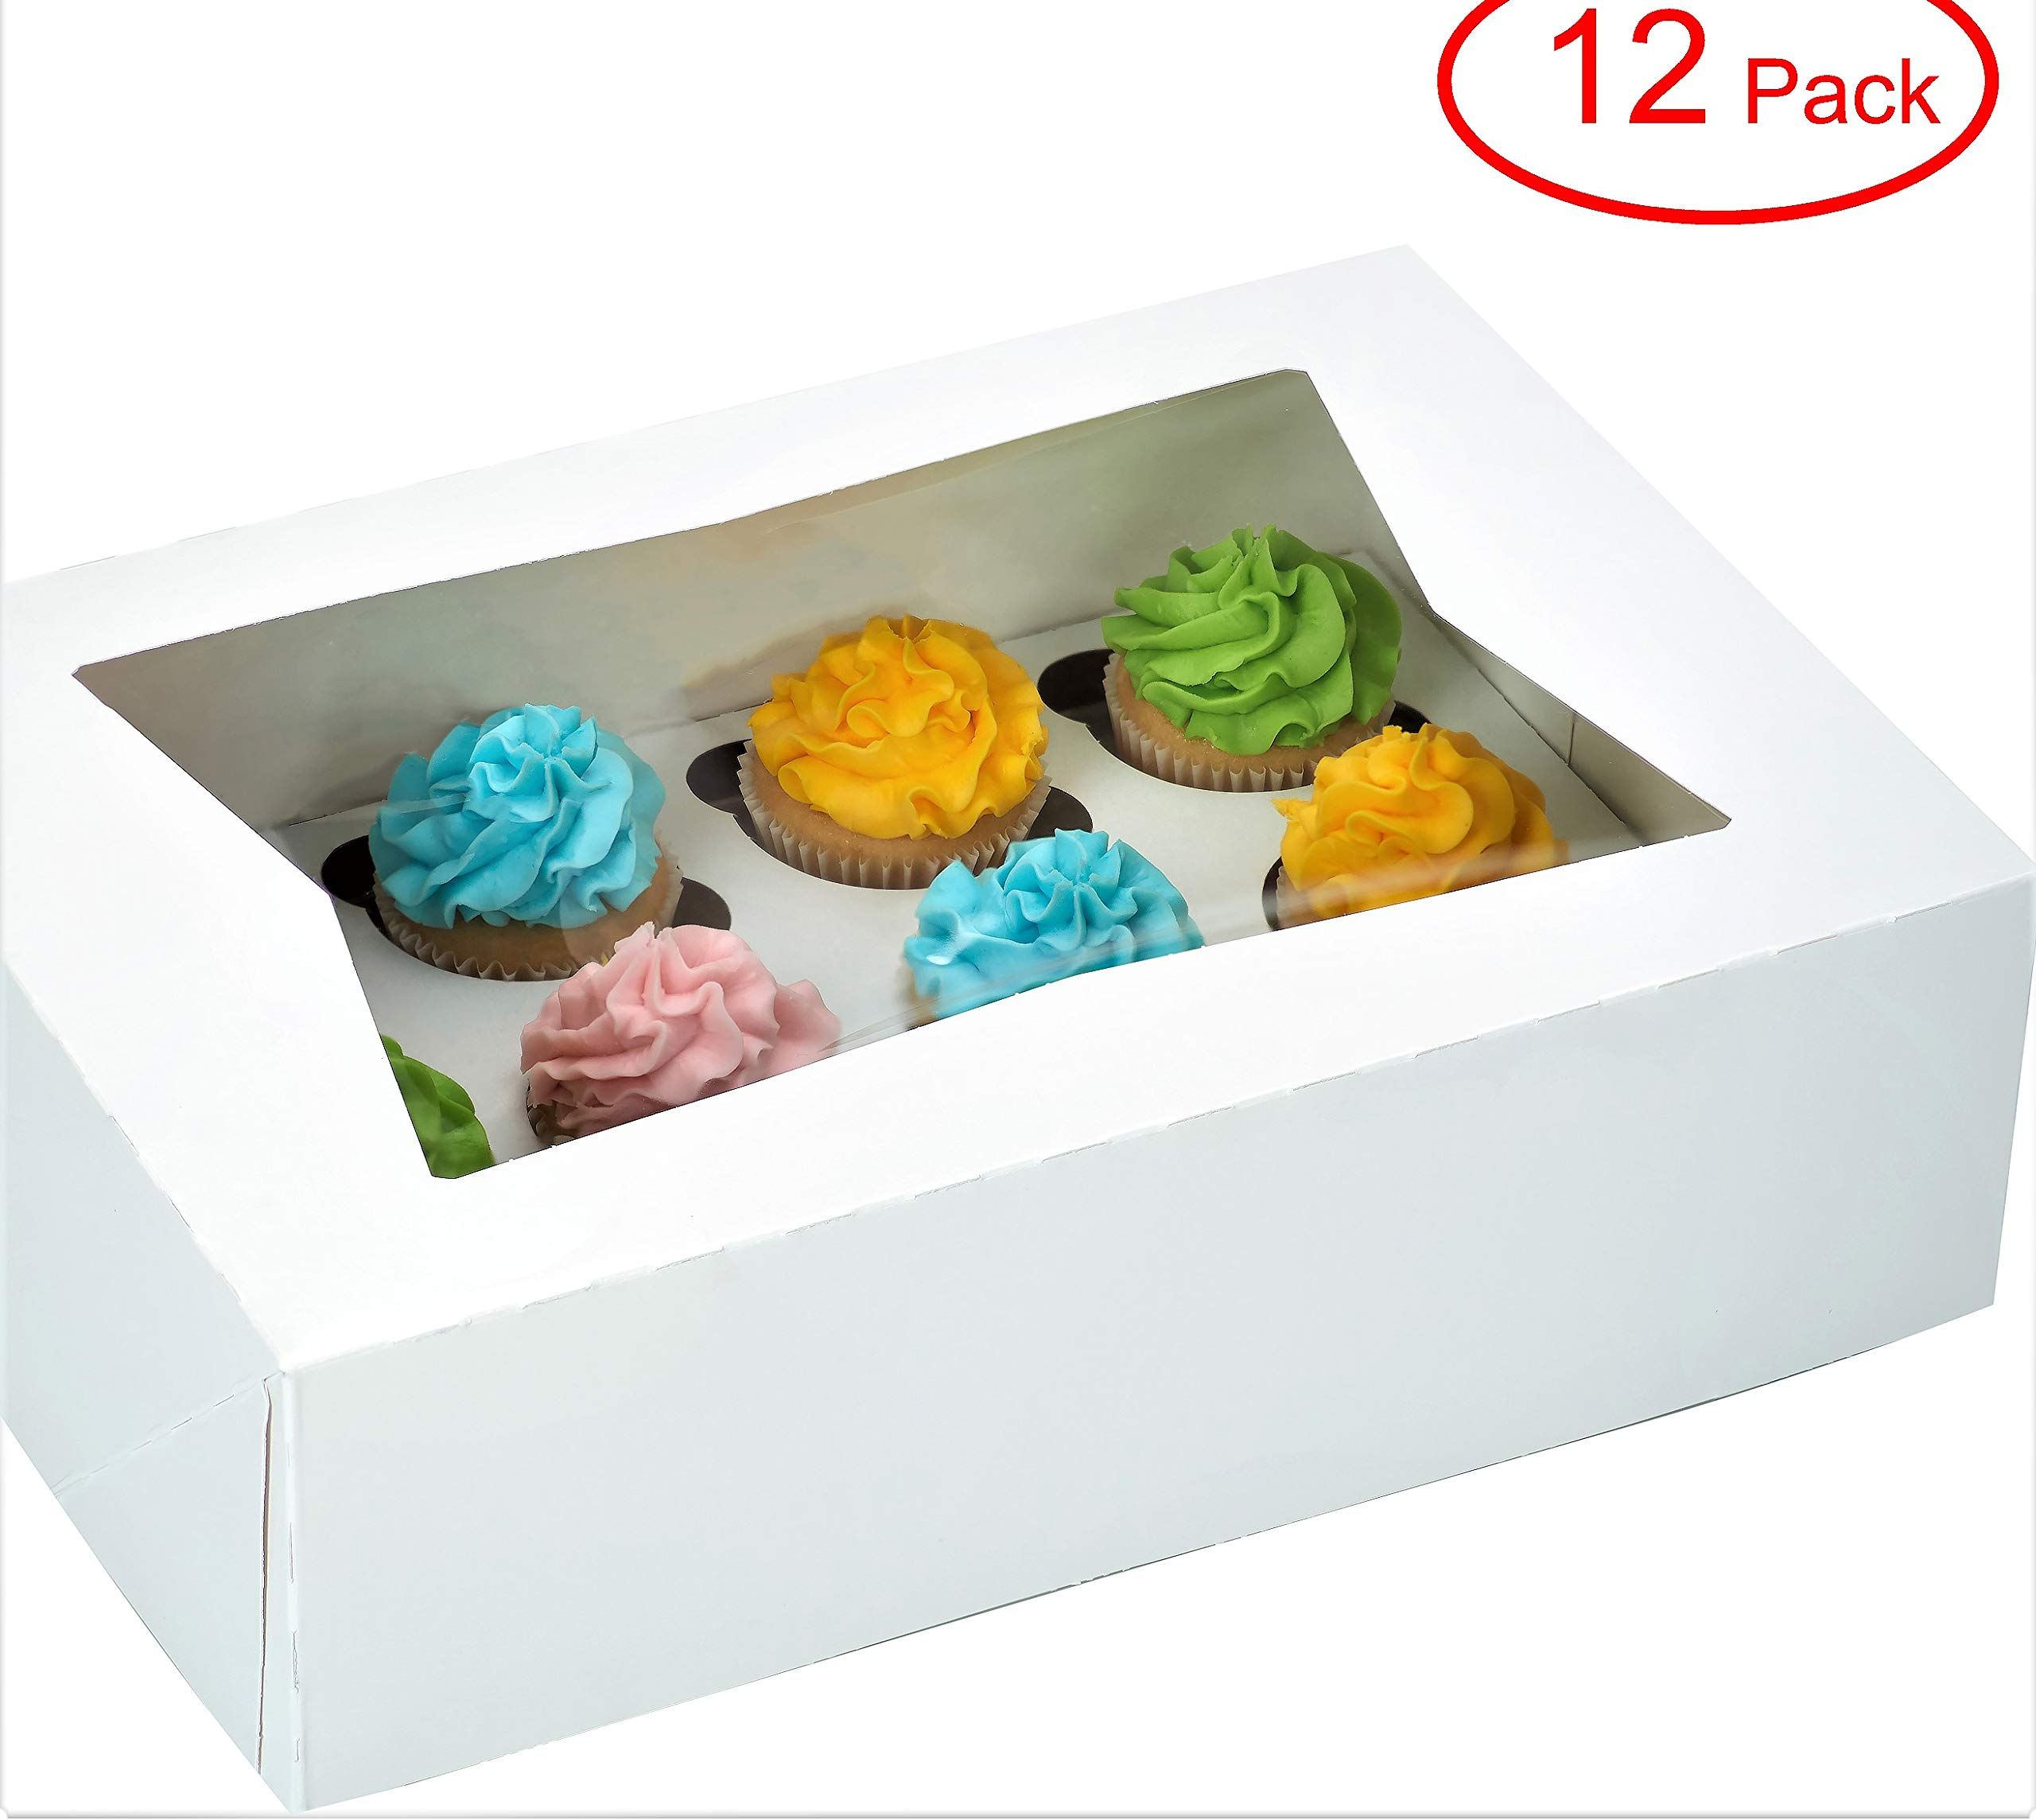 Window Bakery Cupcake Box With Insert 14'' x 10'' x 4'' Fits 12 Standard Size Cupcakes and Muffins - 12 Sets